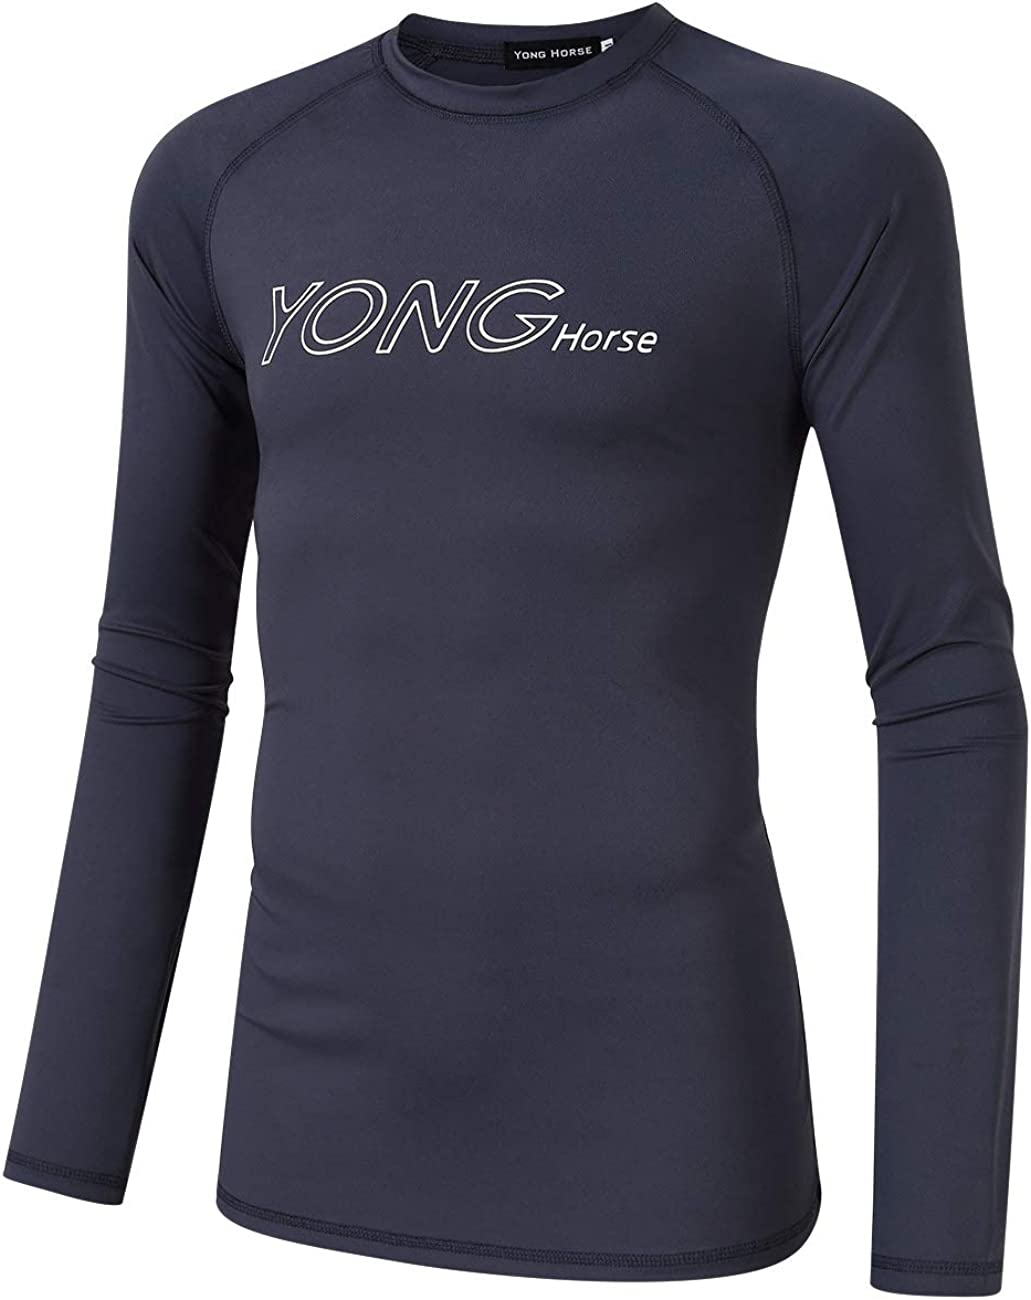 Yong Horse Men's Long Sleeve Swim T-Shirt with Crew Neck,Quick-Dry UPF 50+ Rash Guard,Outdoor Sun Shelter Shirt